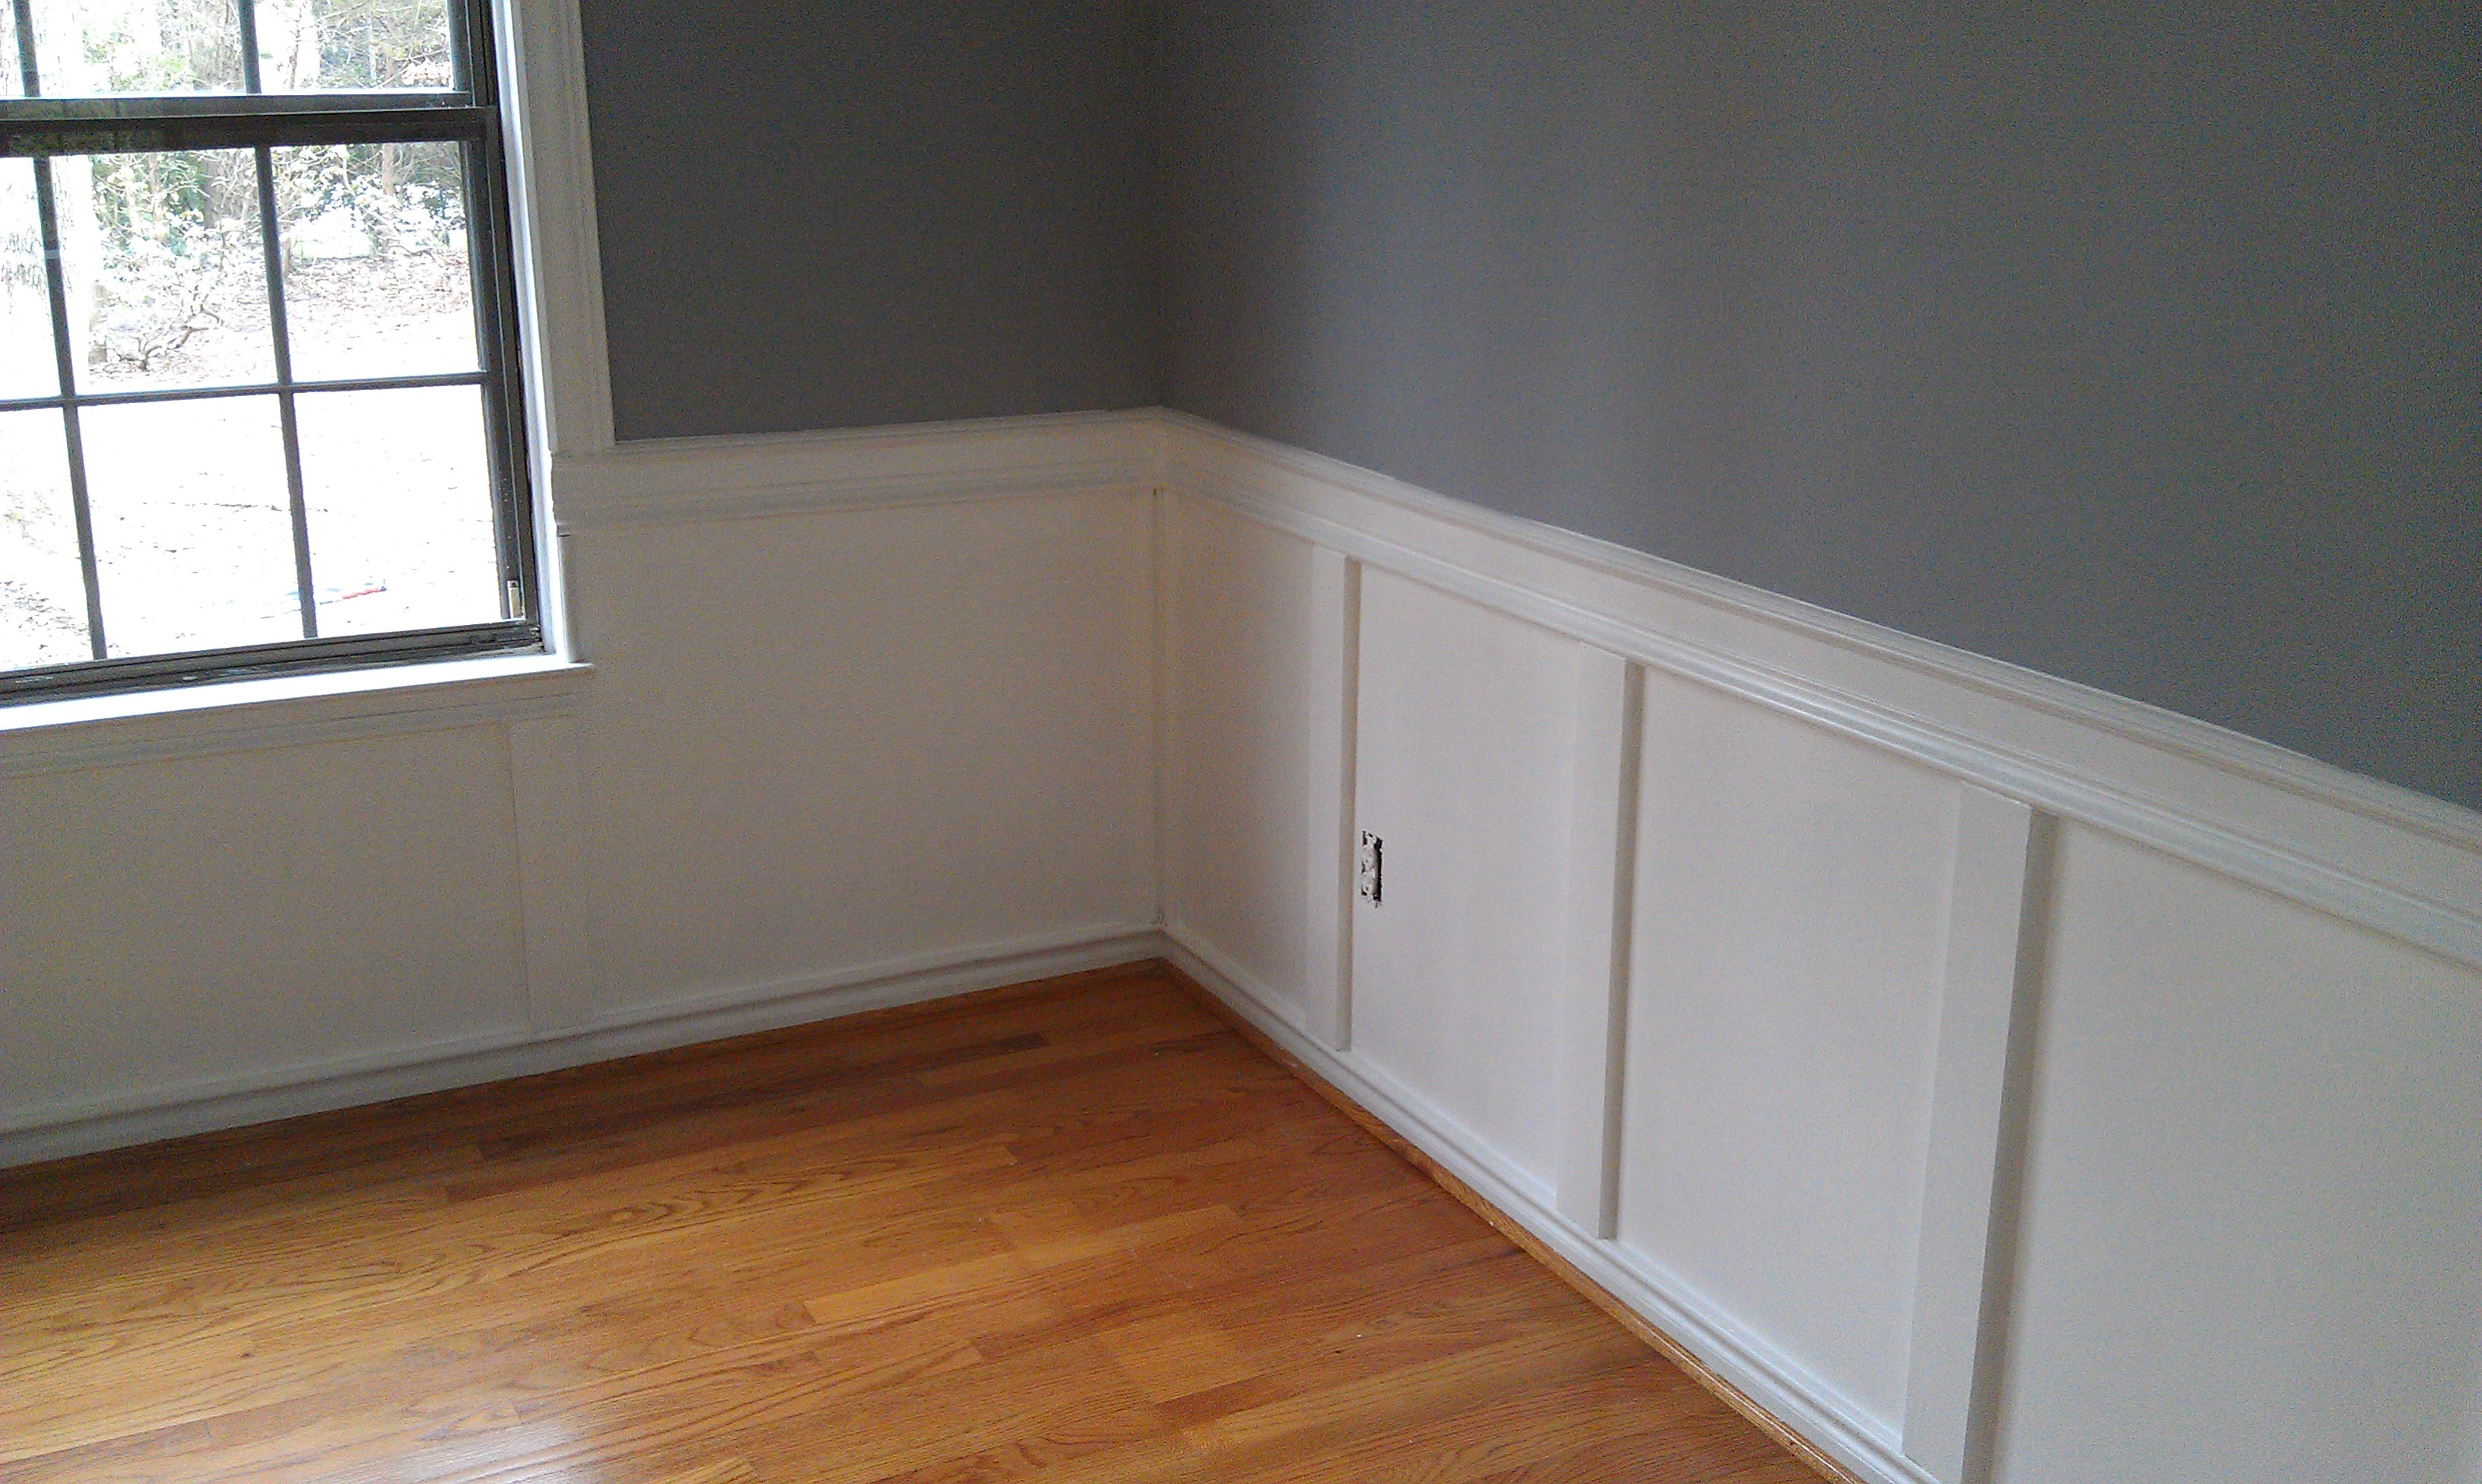 Wainscoting sophia rae home furnishings Bathroom designs wood paneling